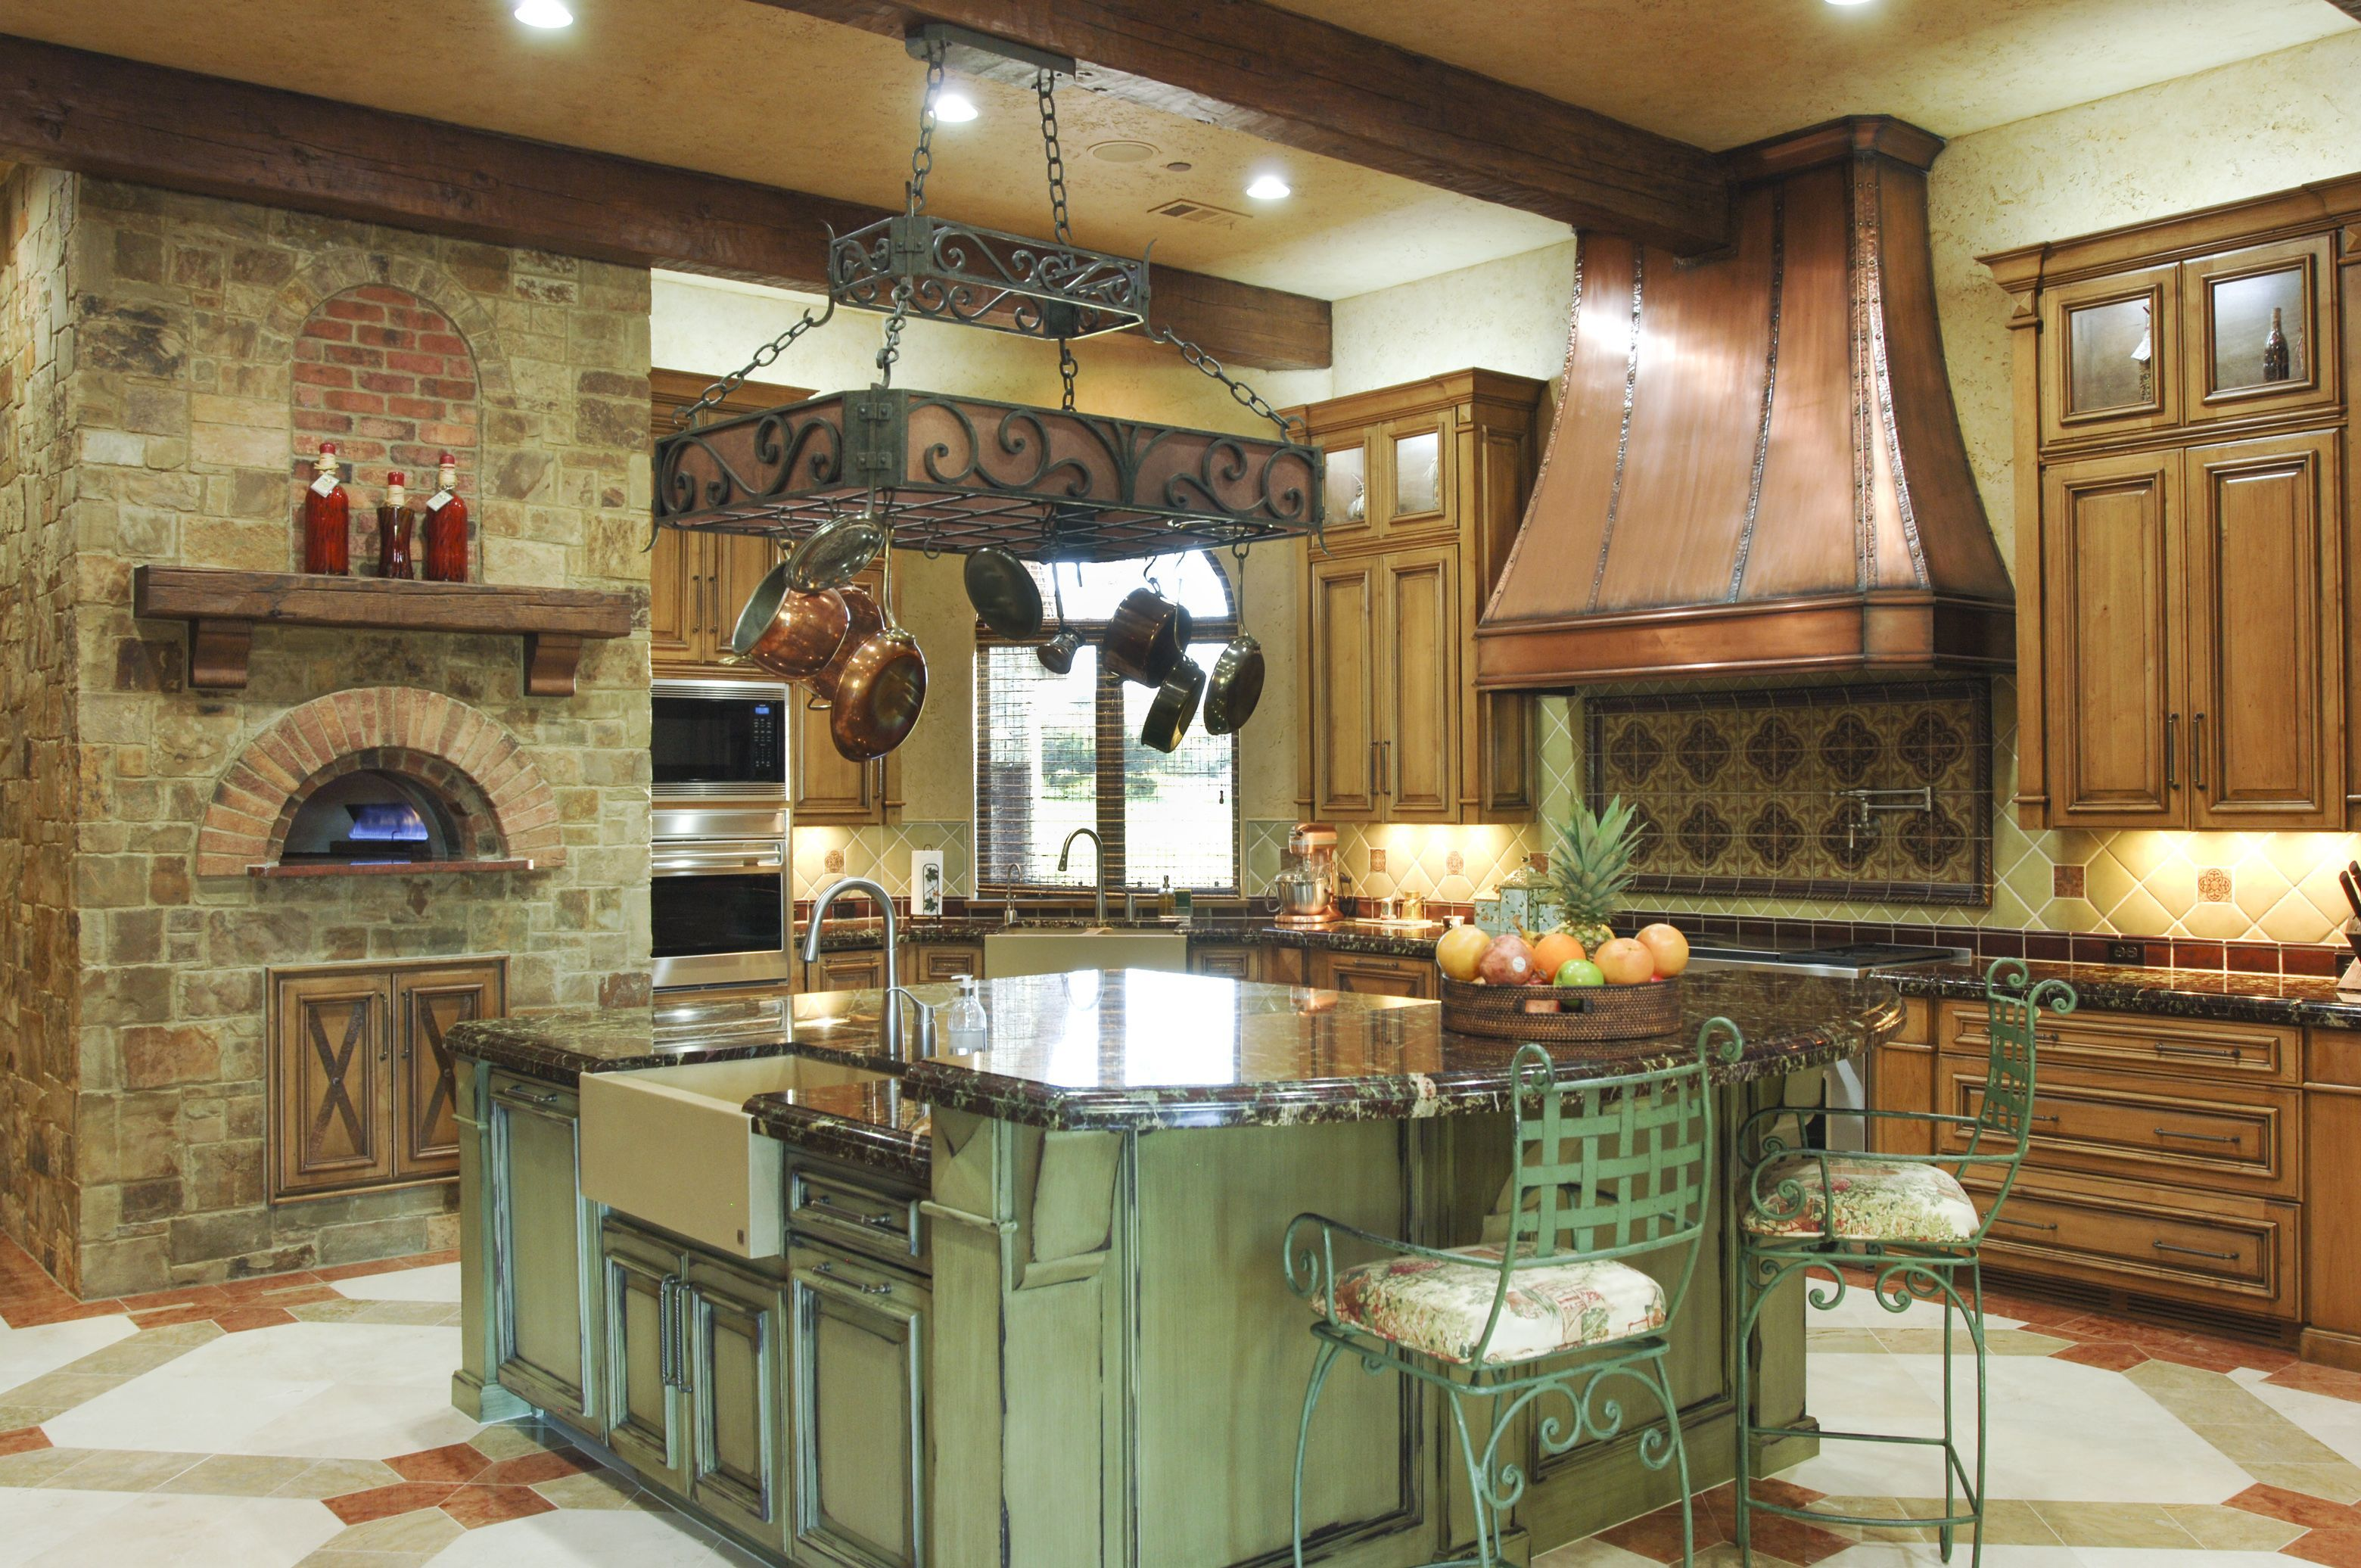 Gentil Kitchen With Pizza Oven, Copper Vent Hood, Wolfe Range, Hand Hewn Beams,  Marble Floor U0026 Counter Tops Etc.